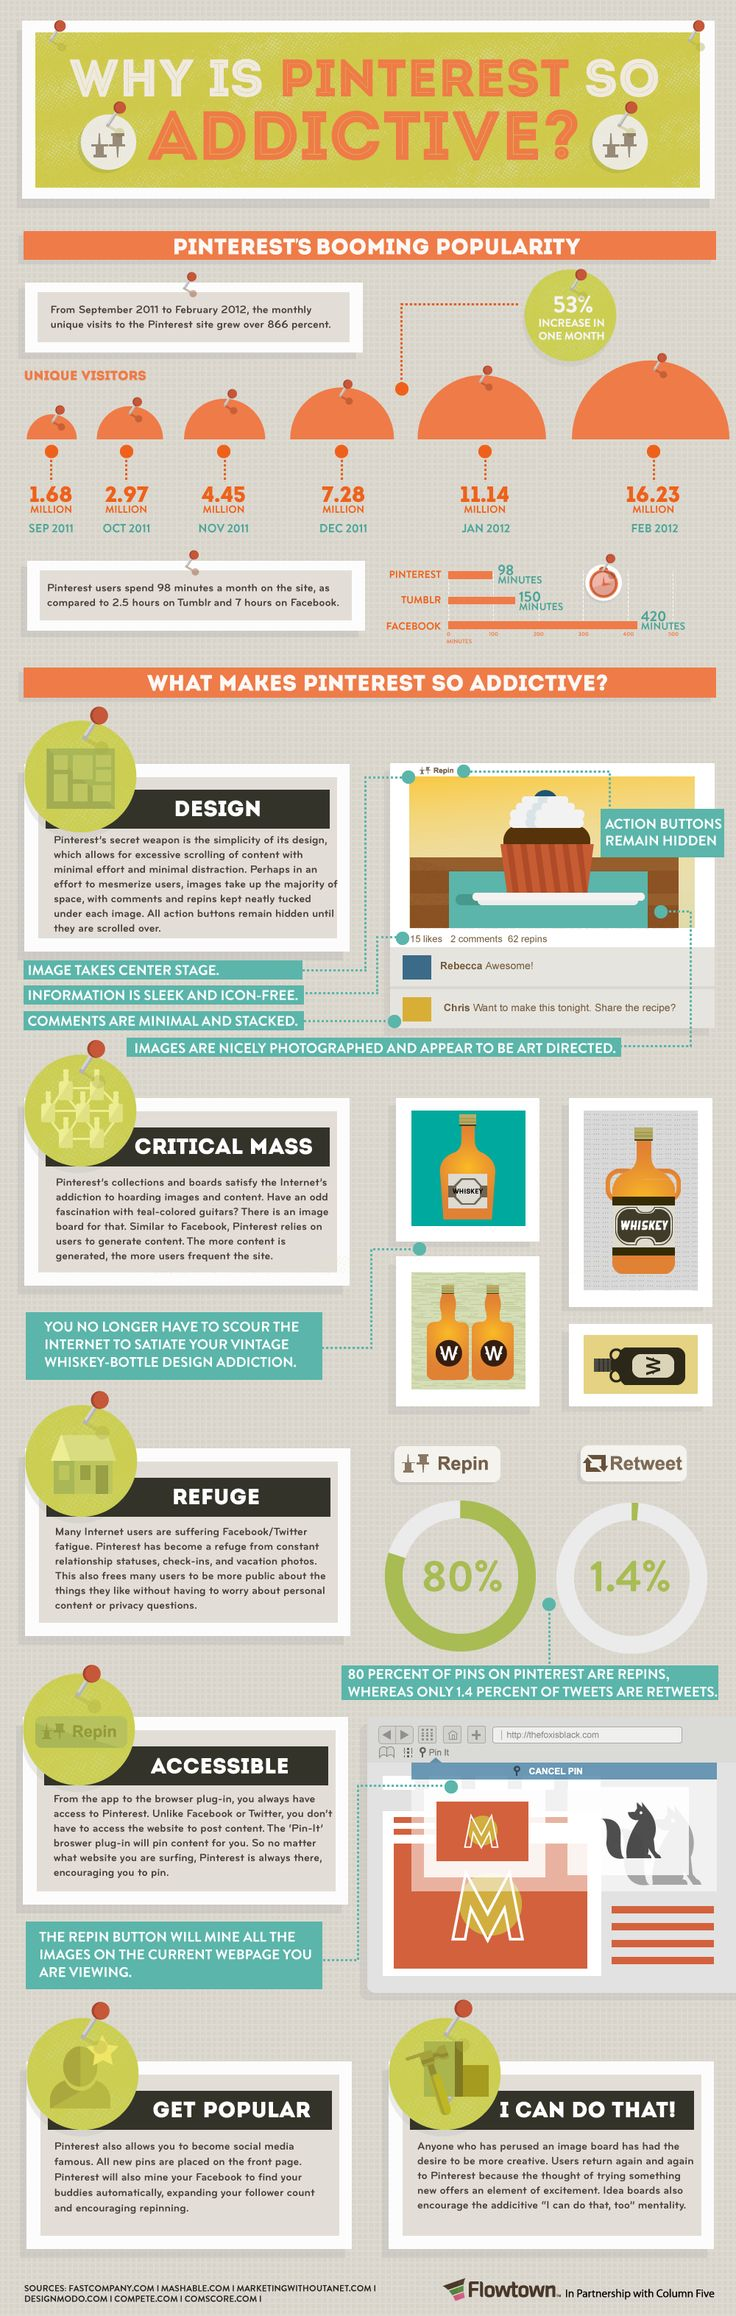 #pinterest infographic Why is pinterest so addictive?